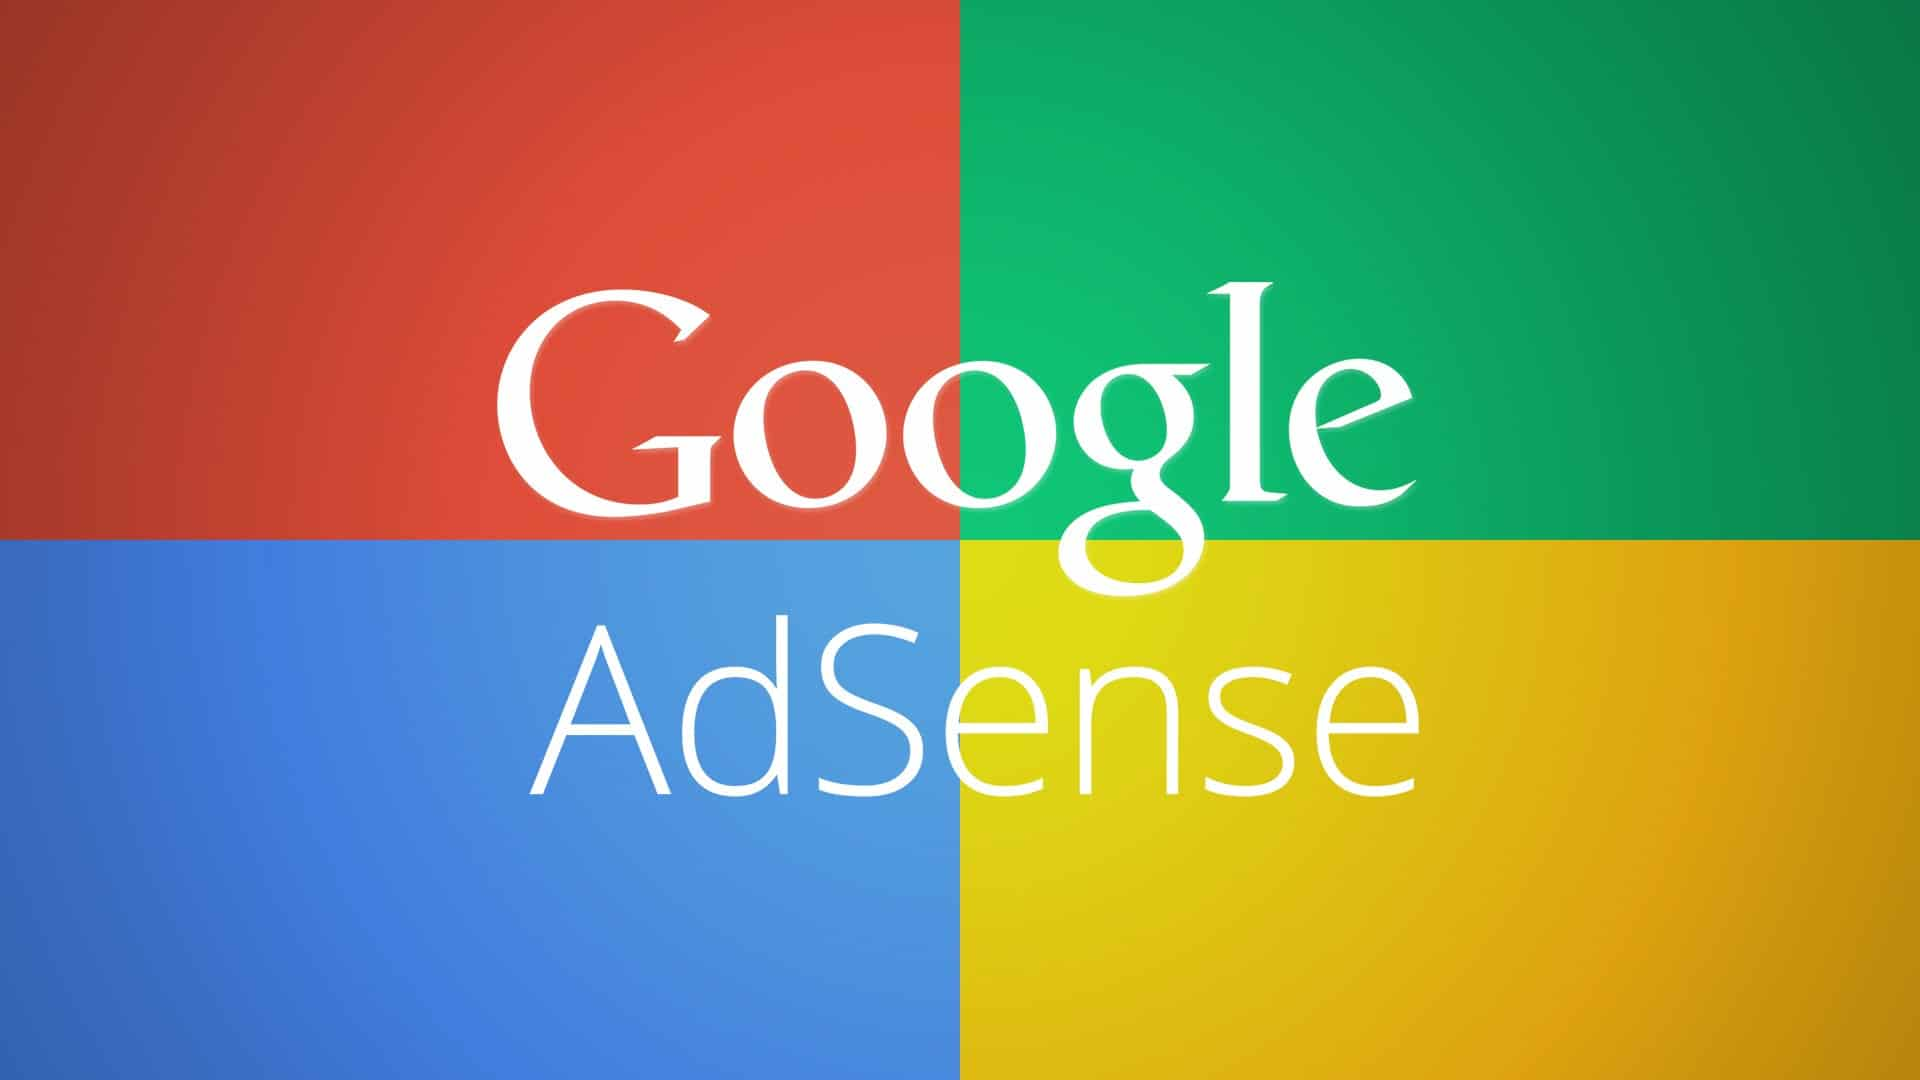 Google Adsense - Make money